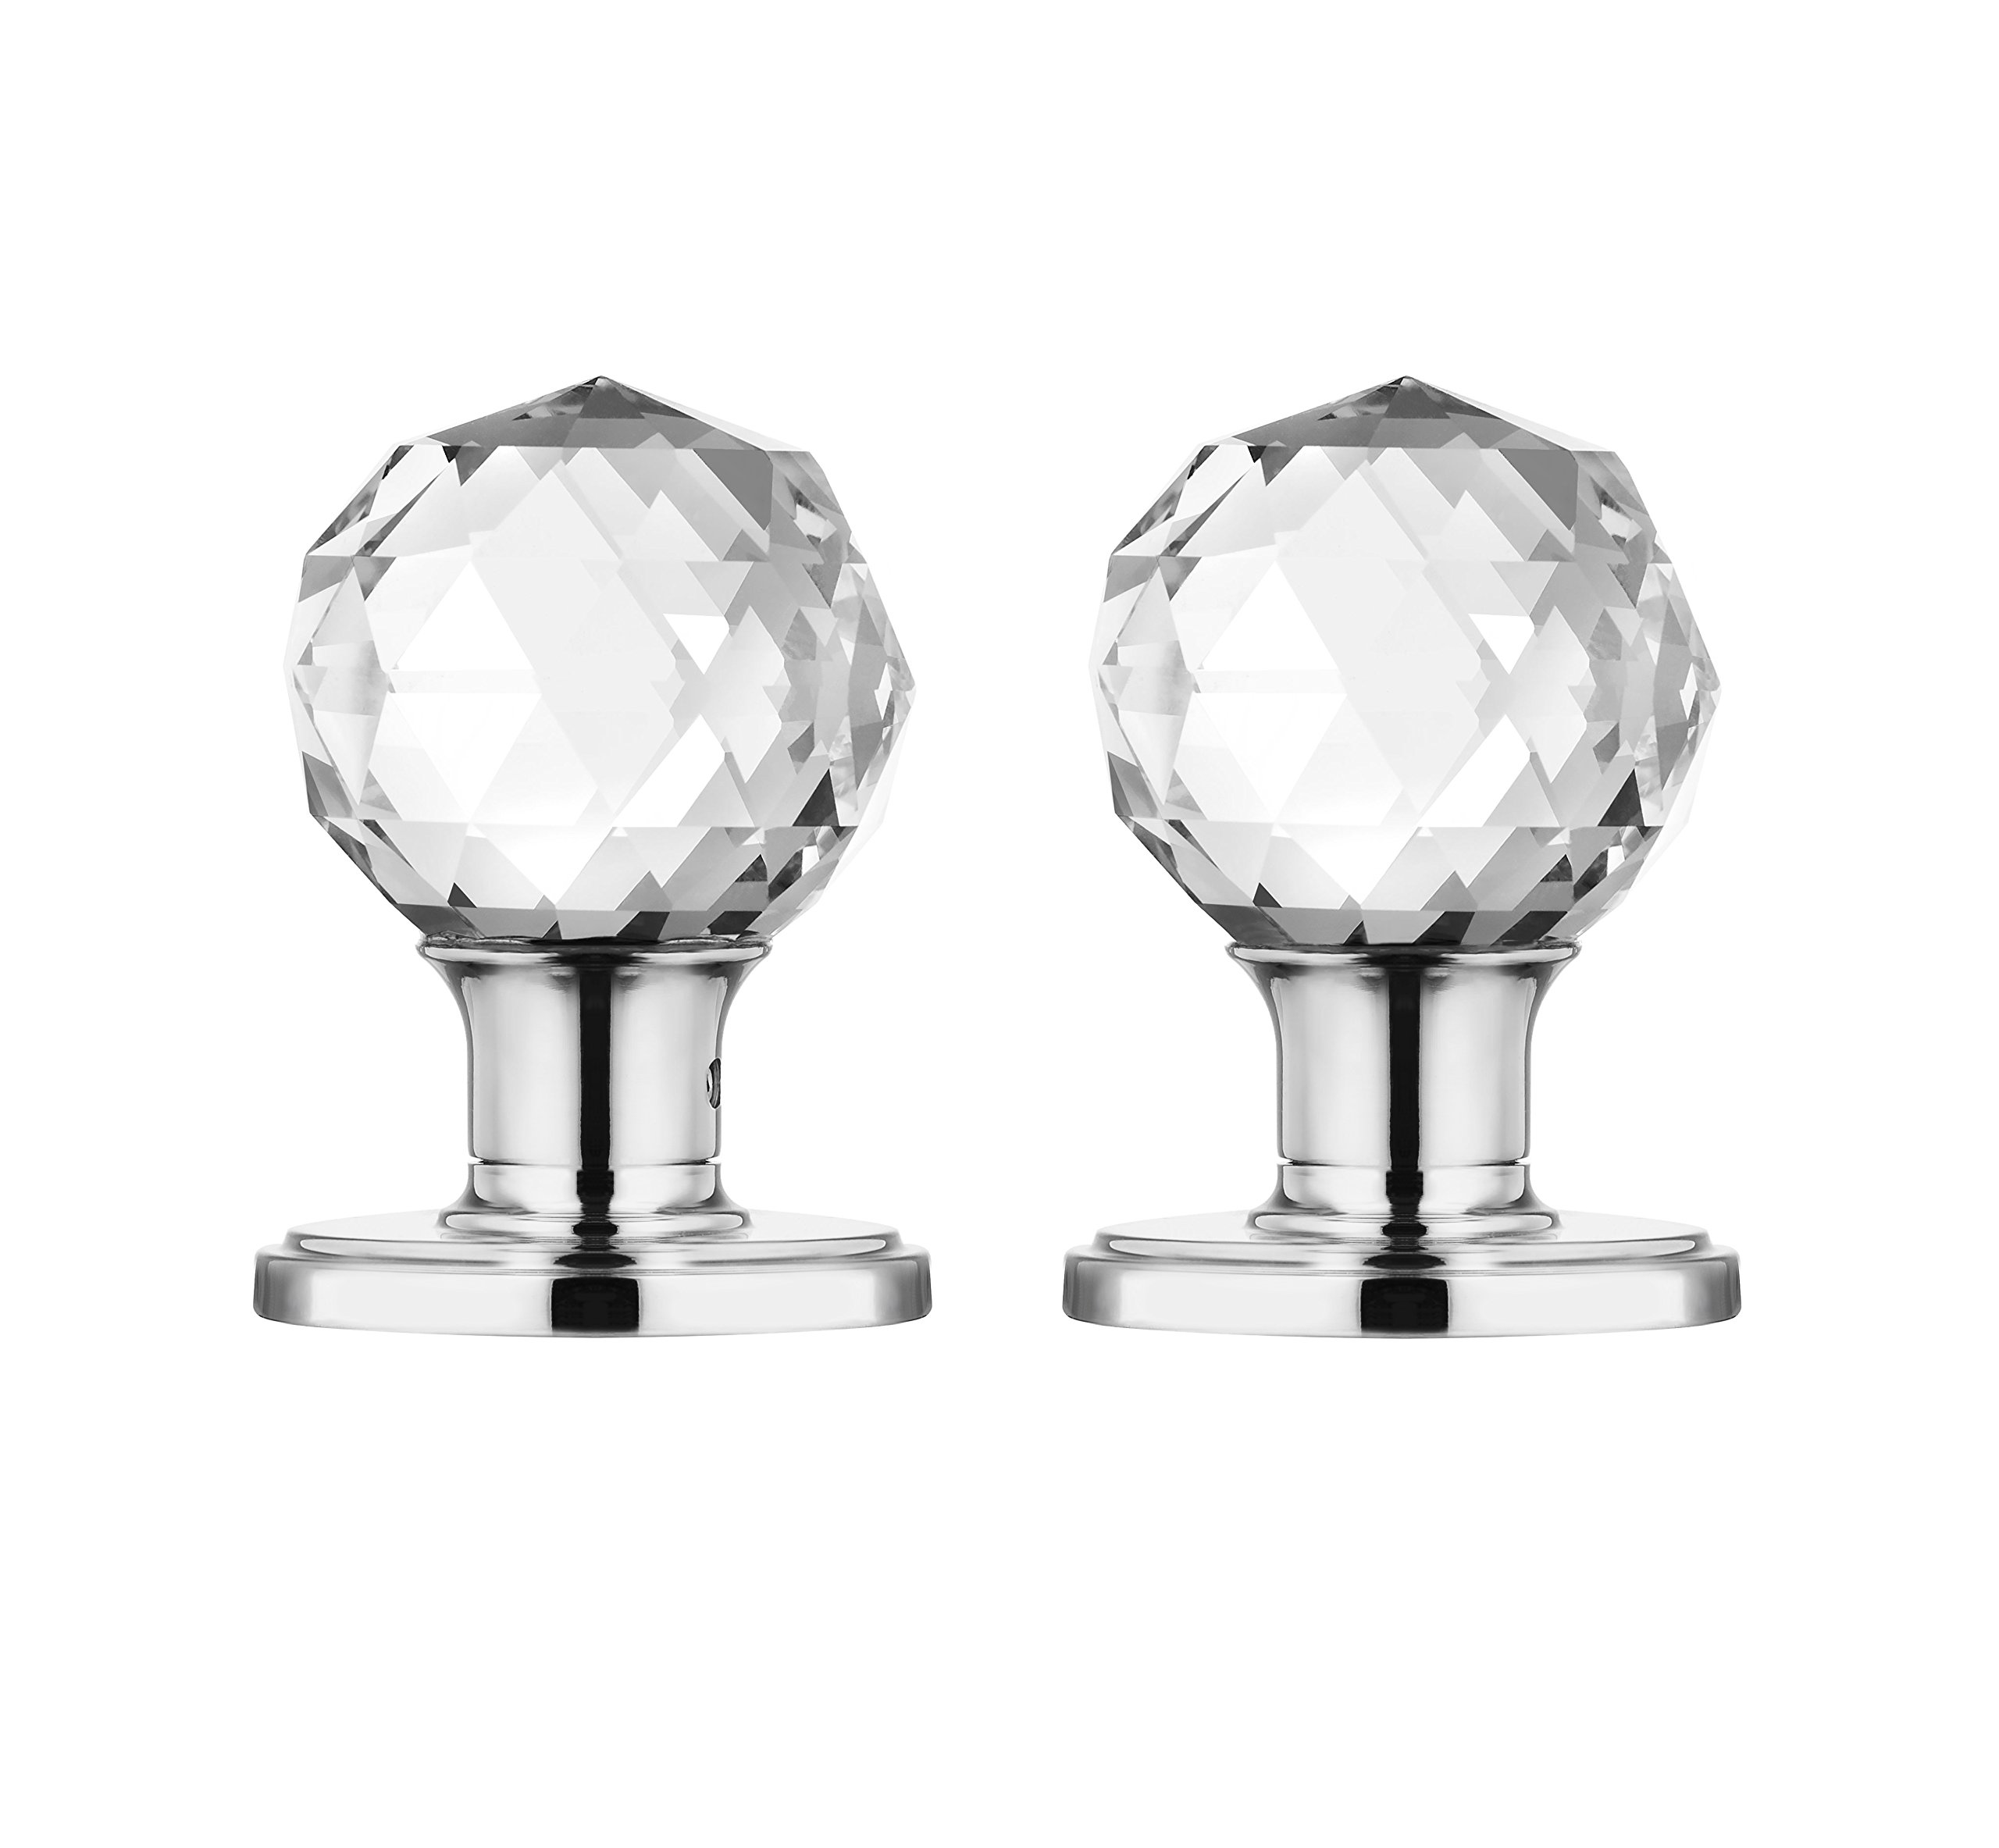 Decor Living, AMG and Enchante Accessories Faceted Crystal Door Knobs with Lock, Privacy Function for Bed and Bath, IRIS Collection, Polished Chrome by DECOR LIVING (Image #7)